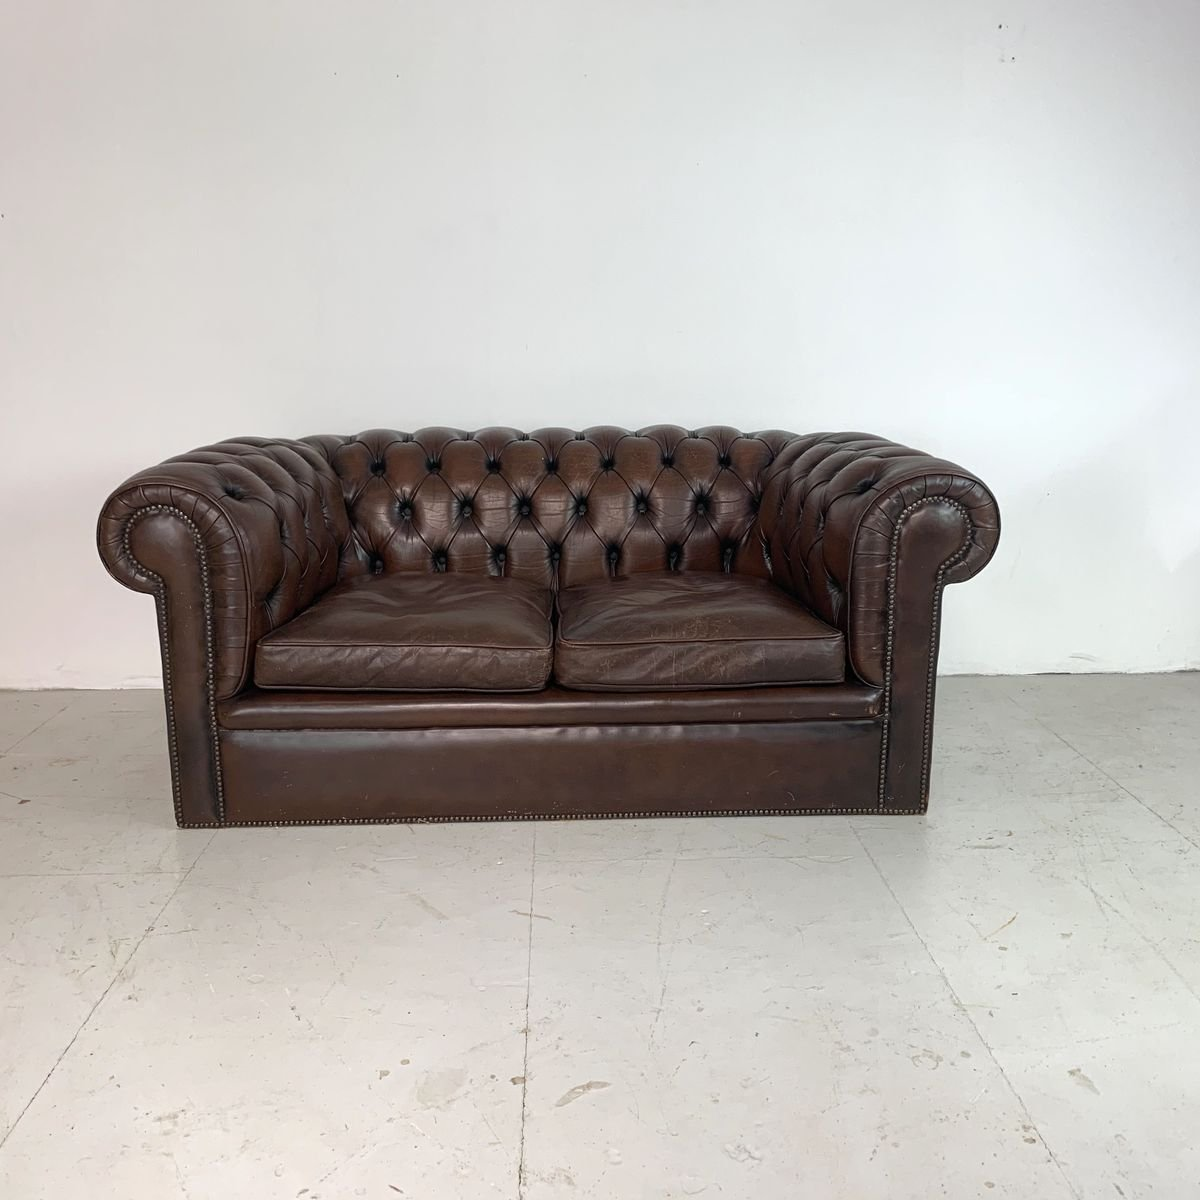 Vintage British Brown Leather Chesterfield Sofa 1960s For Sale At Pamono